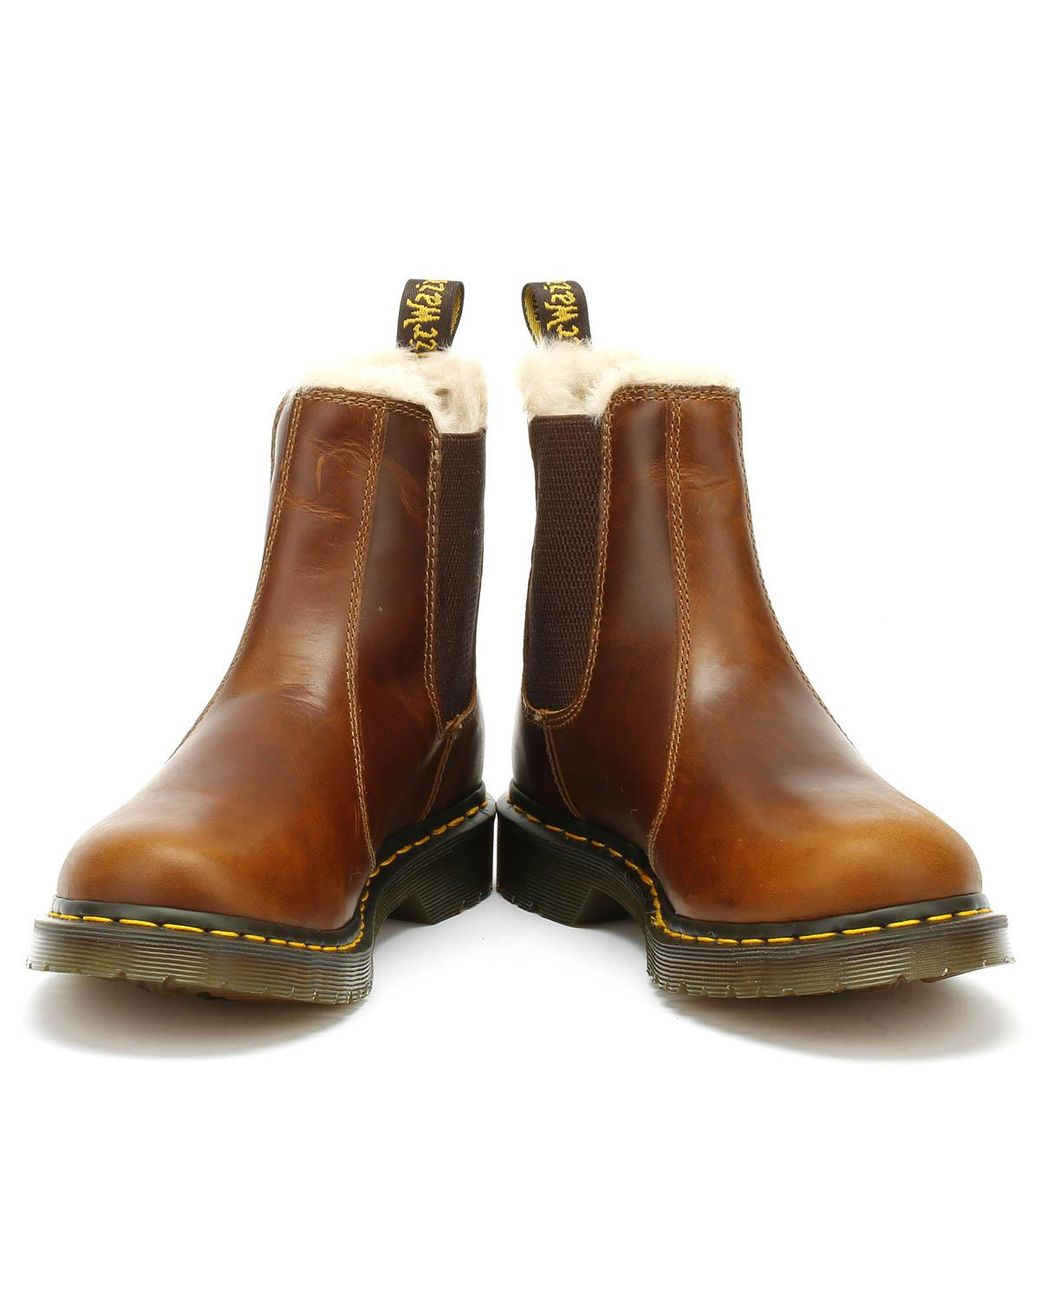 acded2d5bf79 Dr. Martens Dr. Martens 2976 Leonore Womens Brown Butterscotch Boots in  Brown - Lyst